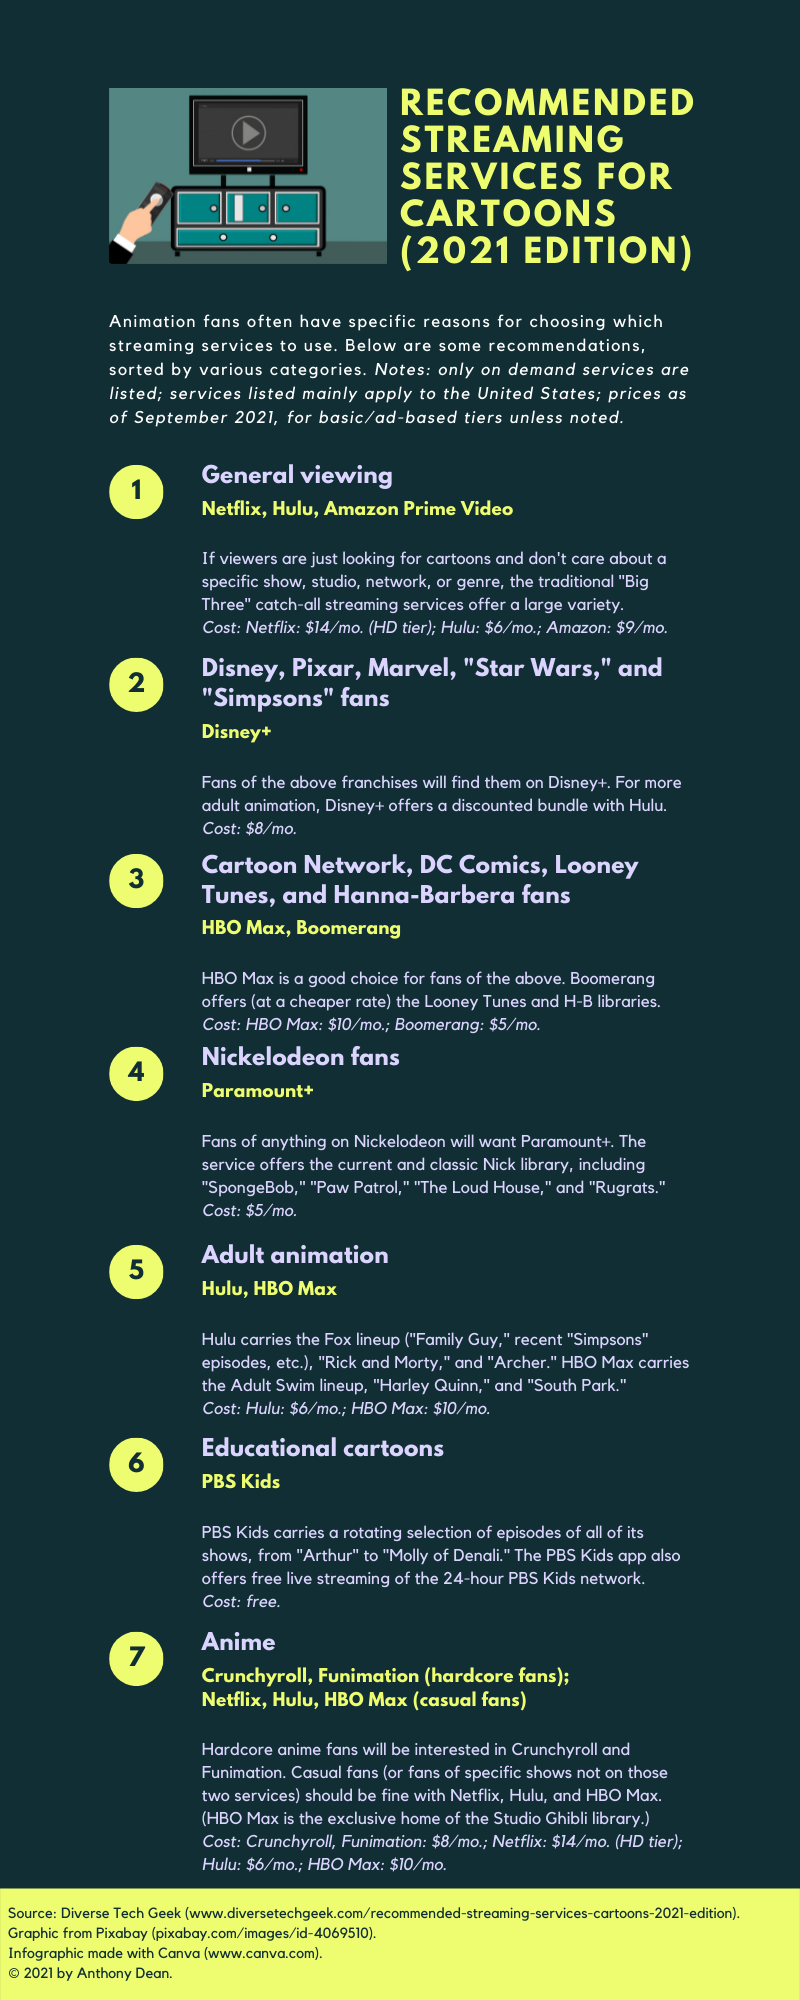 Recommended streaming services for cartoons infographic (2021)